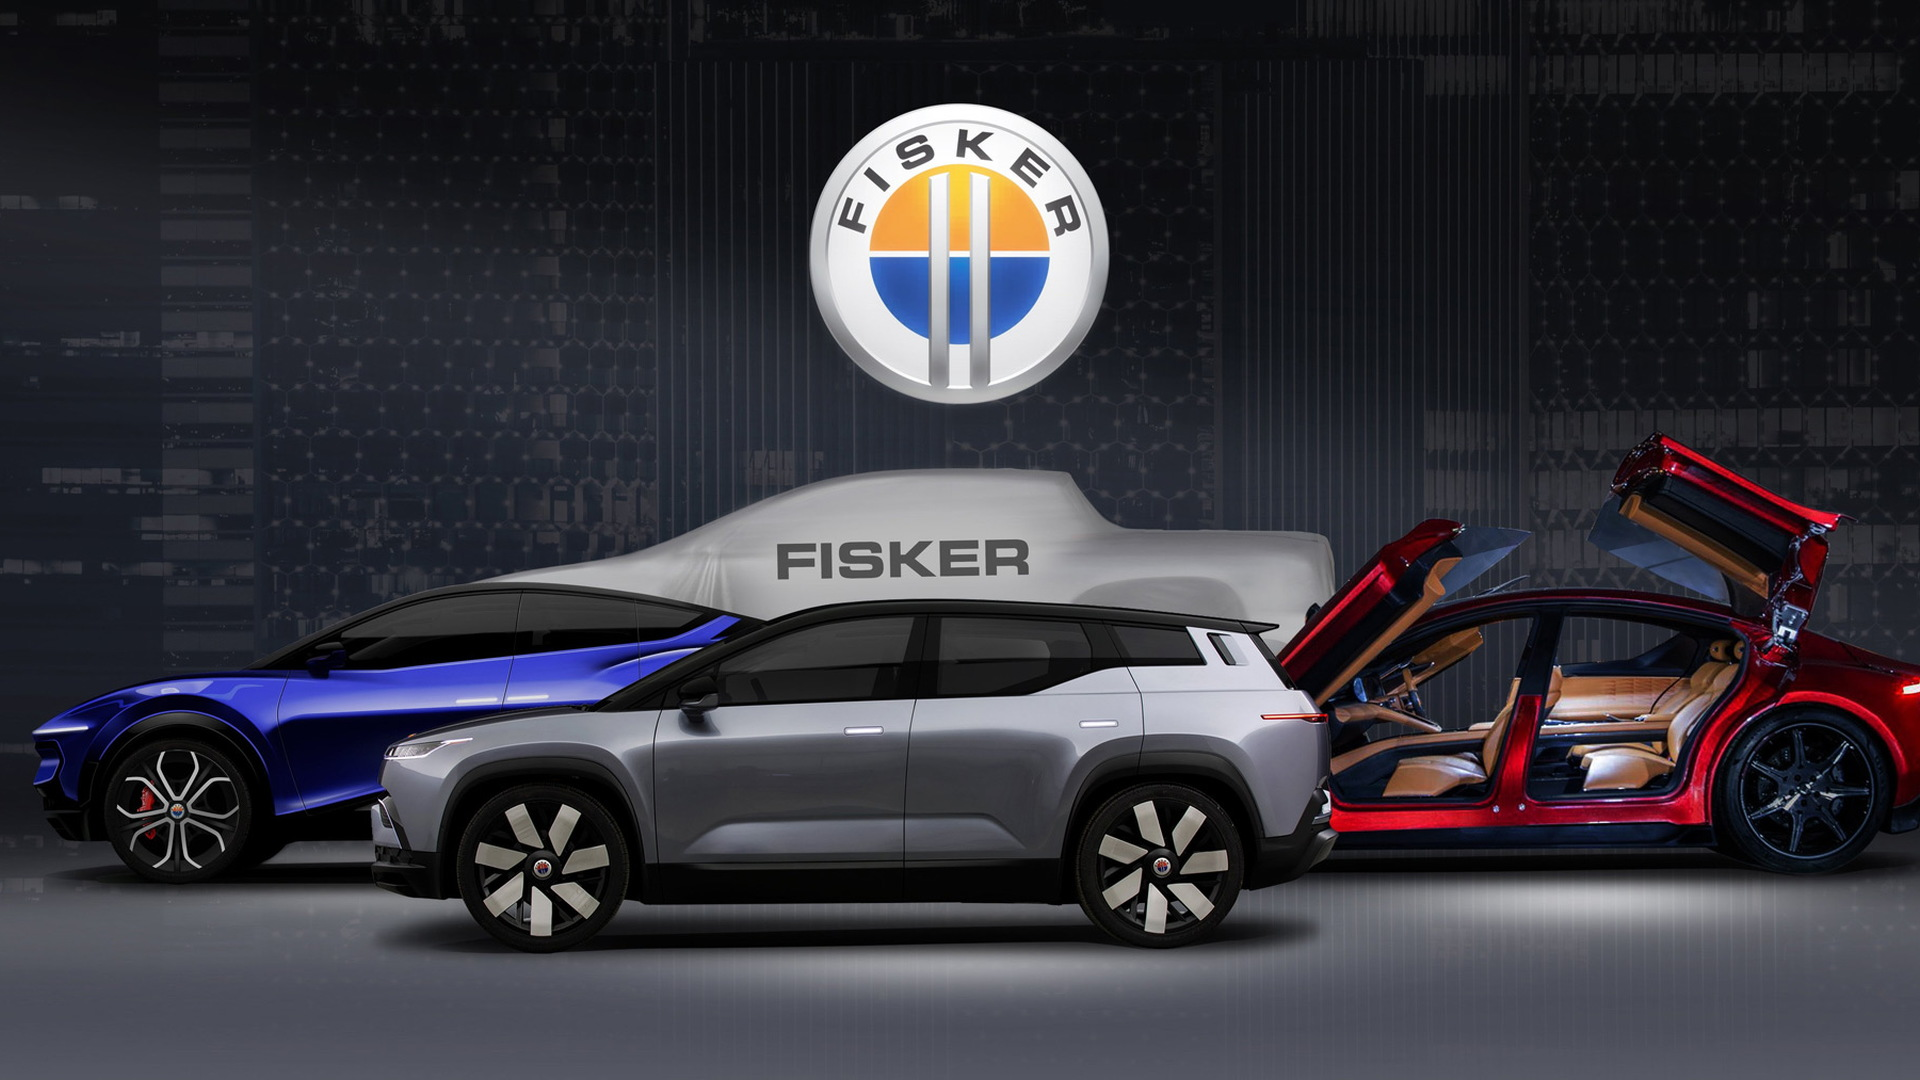 Fisker promises four electric vehicles by 2025